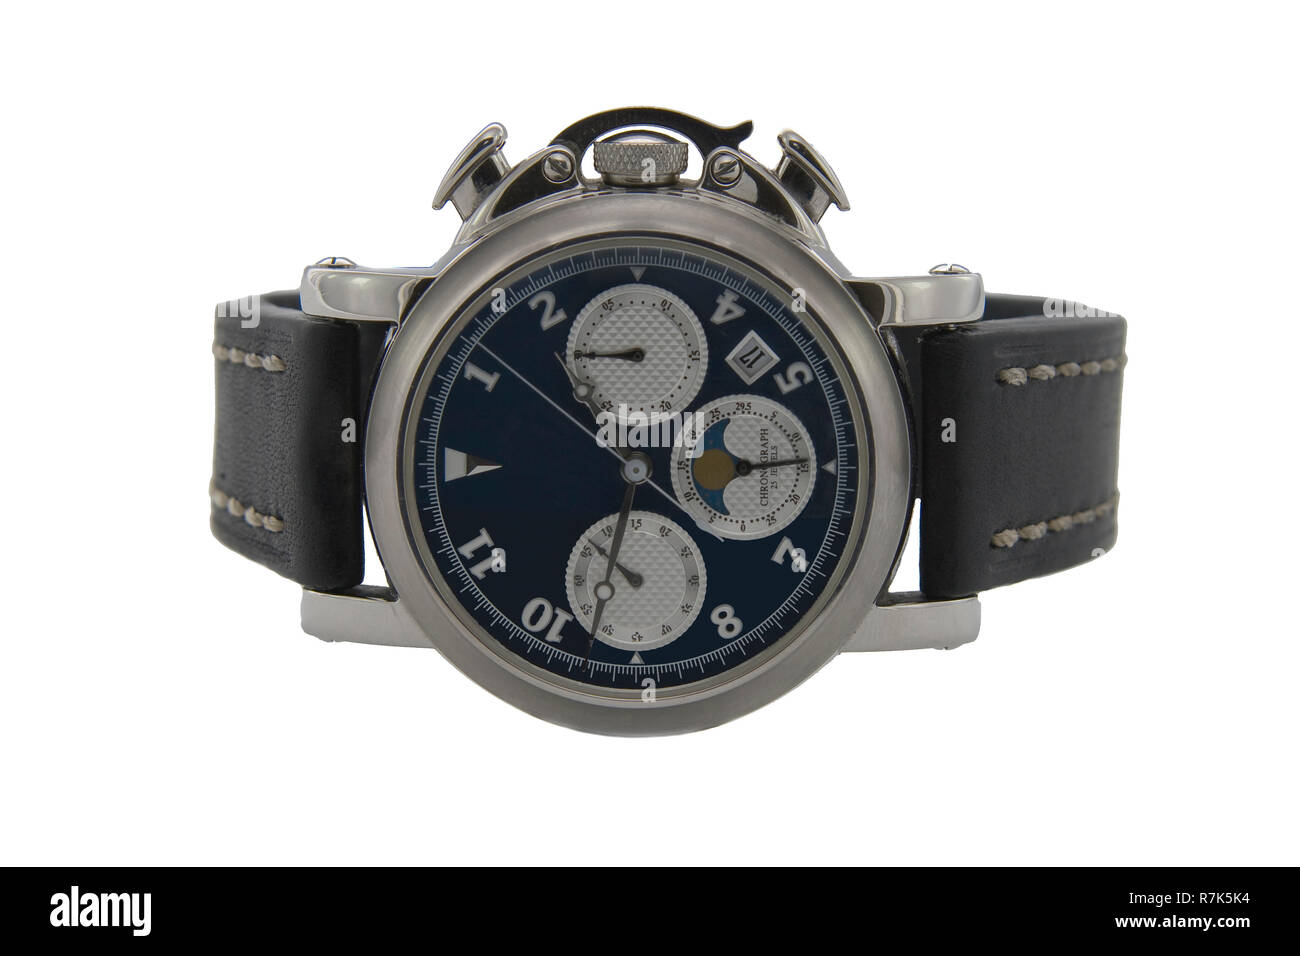 Chronograph watch isolated white background - Stock Image